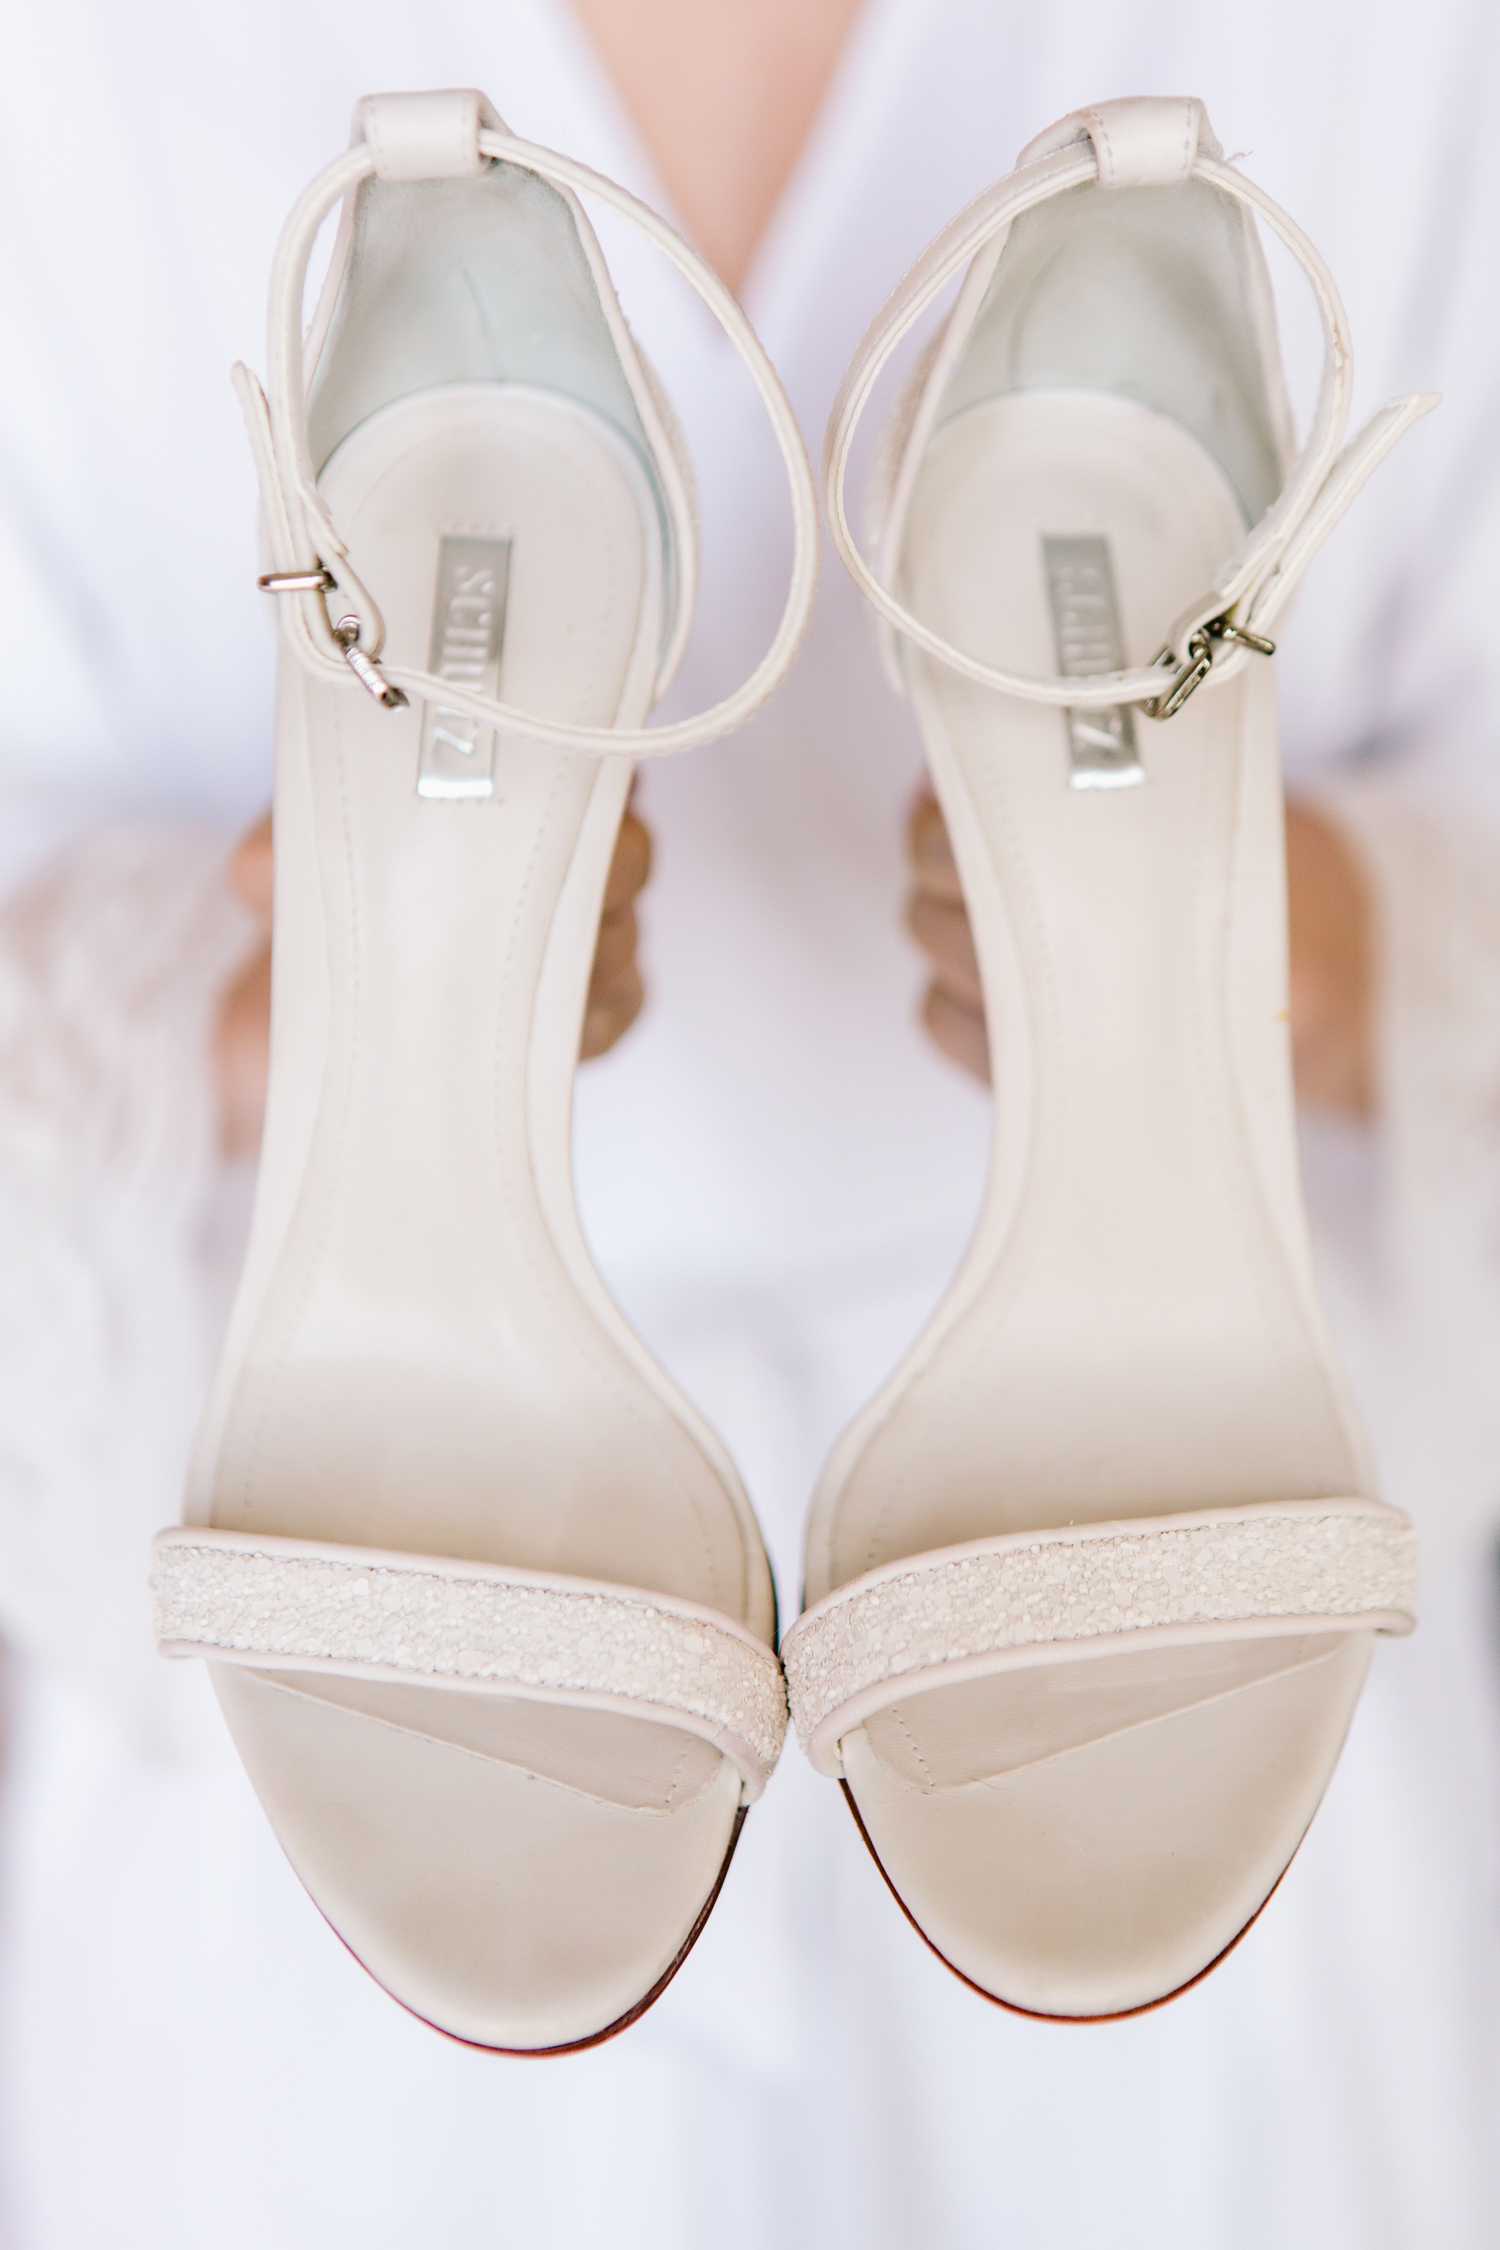 Wedding Shoes 25 Stylish Heels Worn By Real Brides Inside Weddings